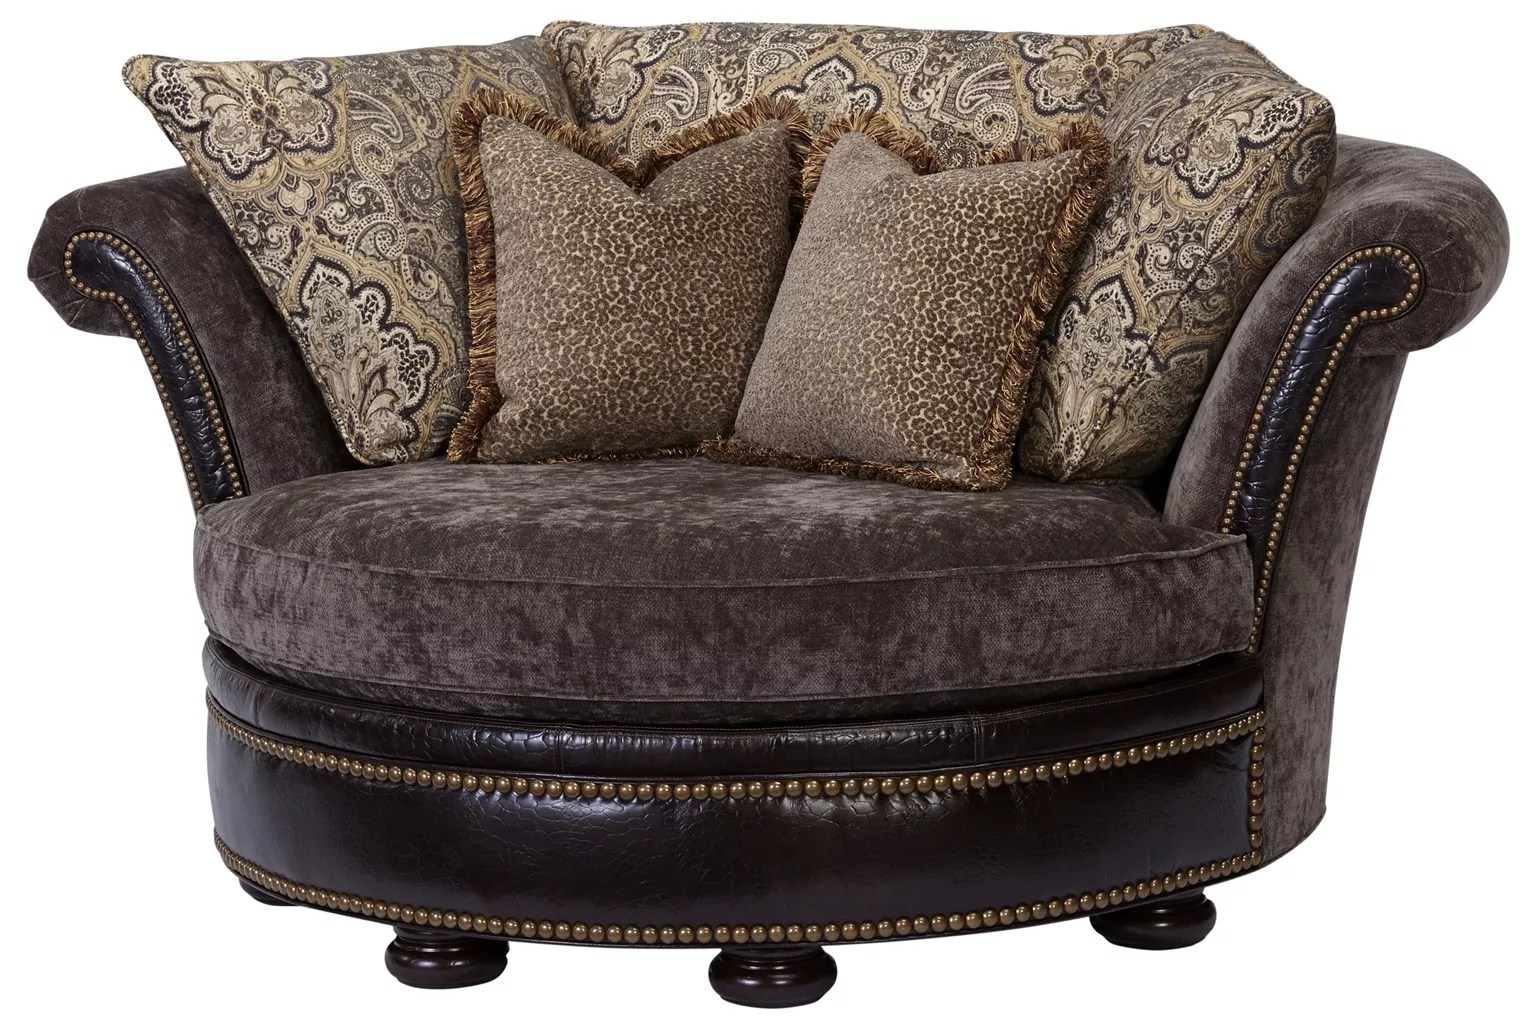 Leather Upholstered Lounge Round Chaise Lounge 2254